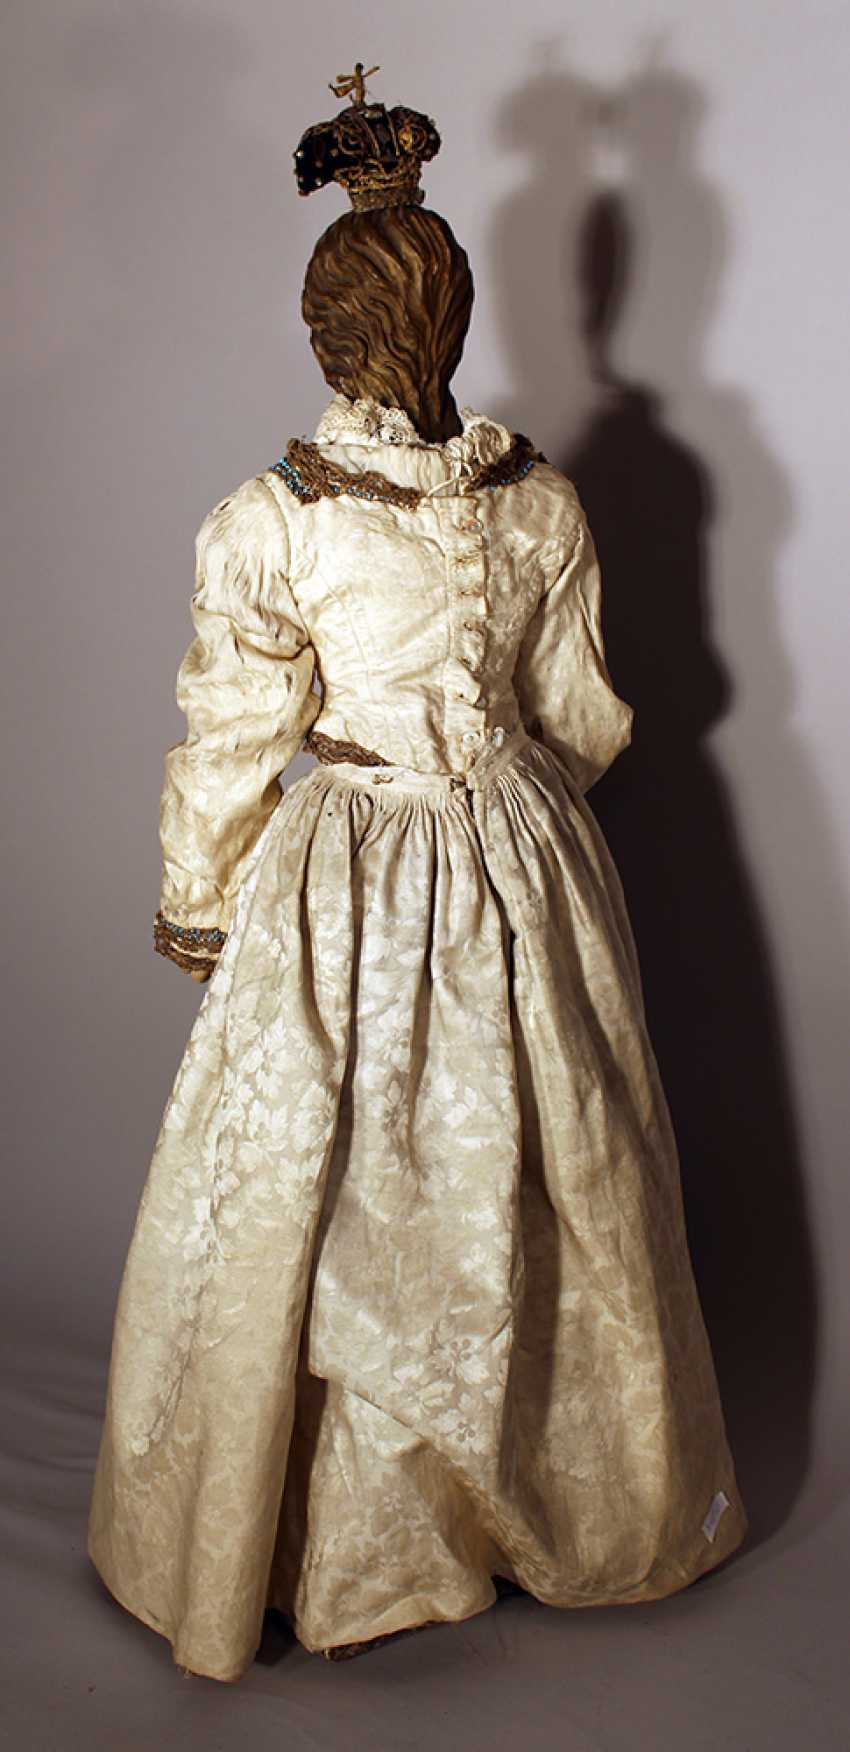 A Neapolitan procession sculpture of Maria, wood carved on quadratic shaped base, with original painting and dress with white neeled clothes with gilded embroidery and white open work necklace - photo 3